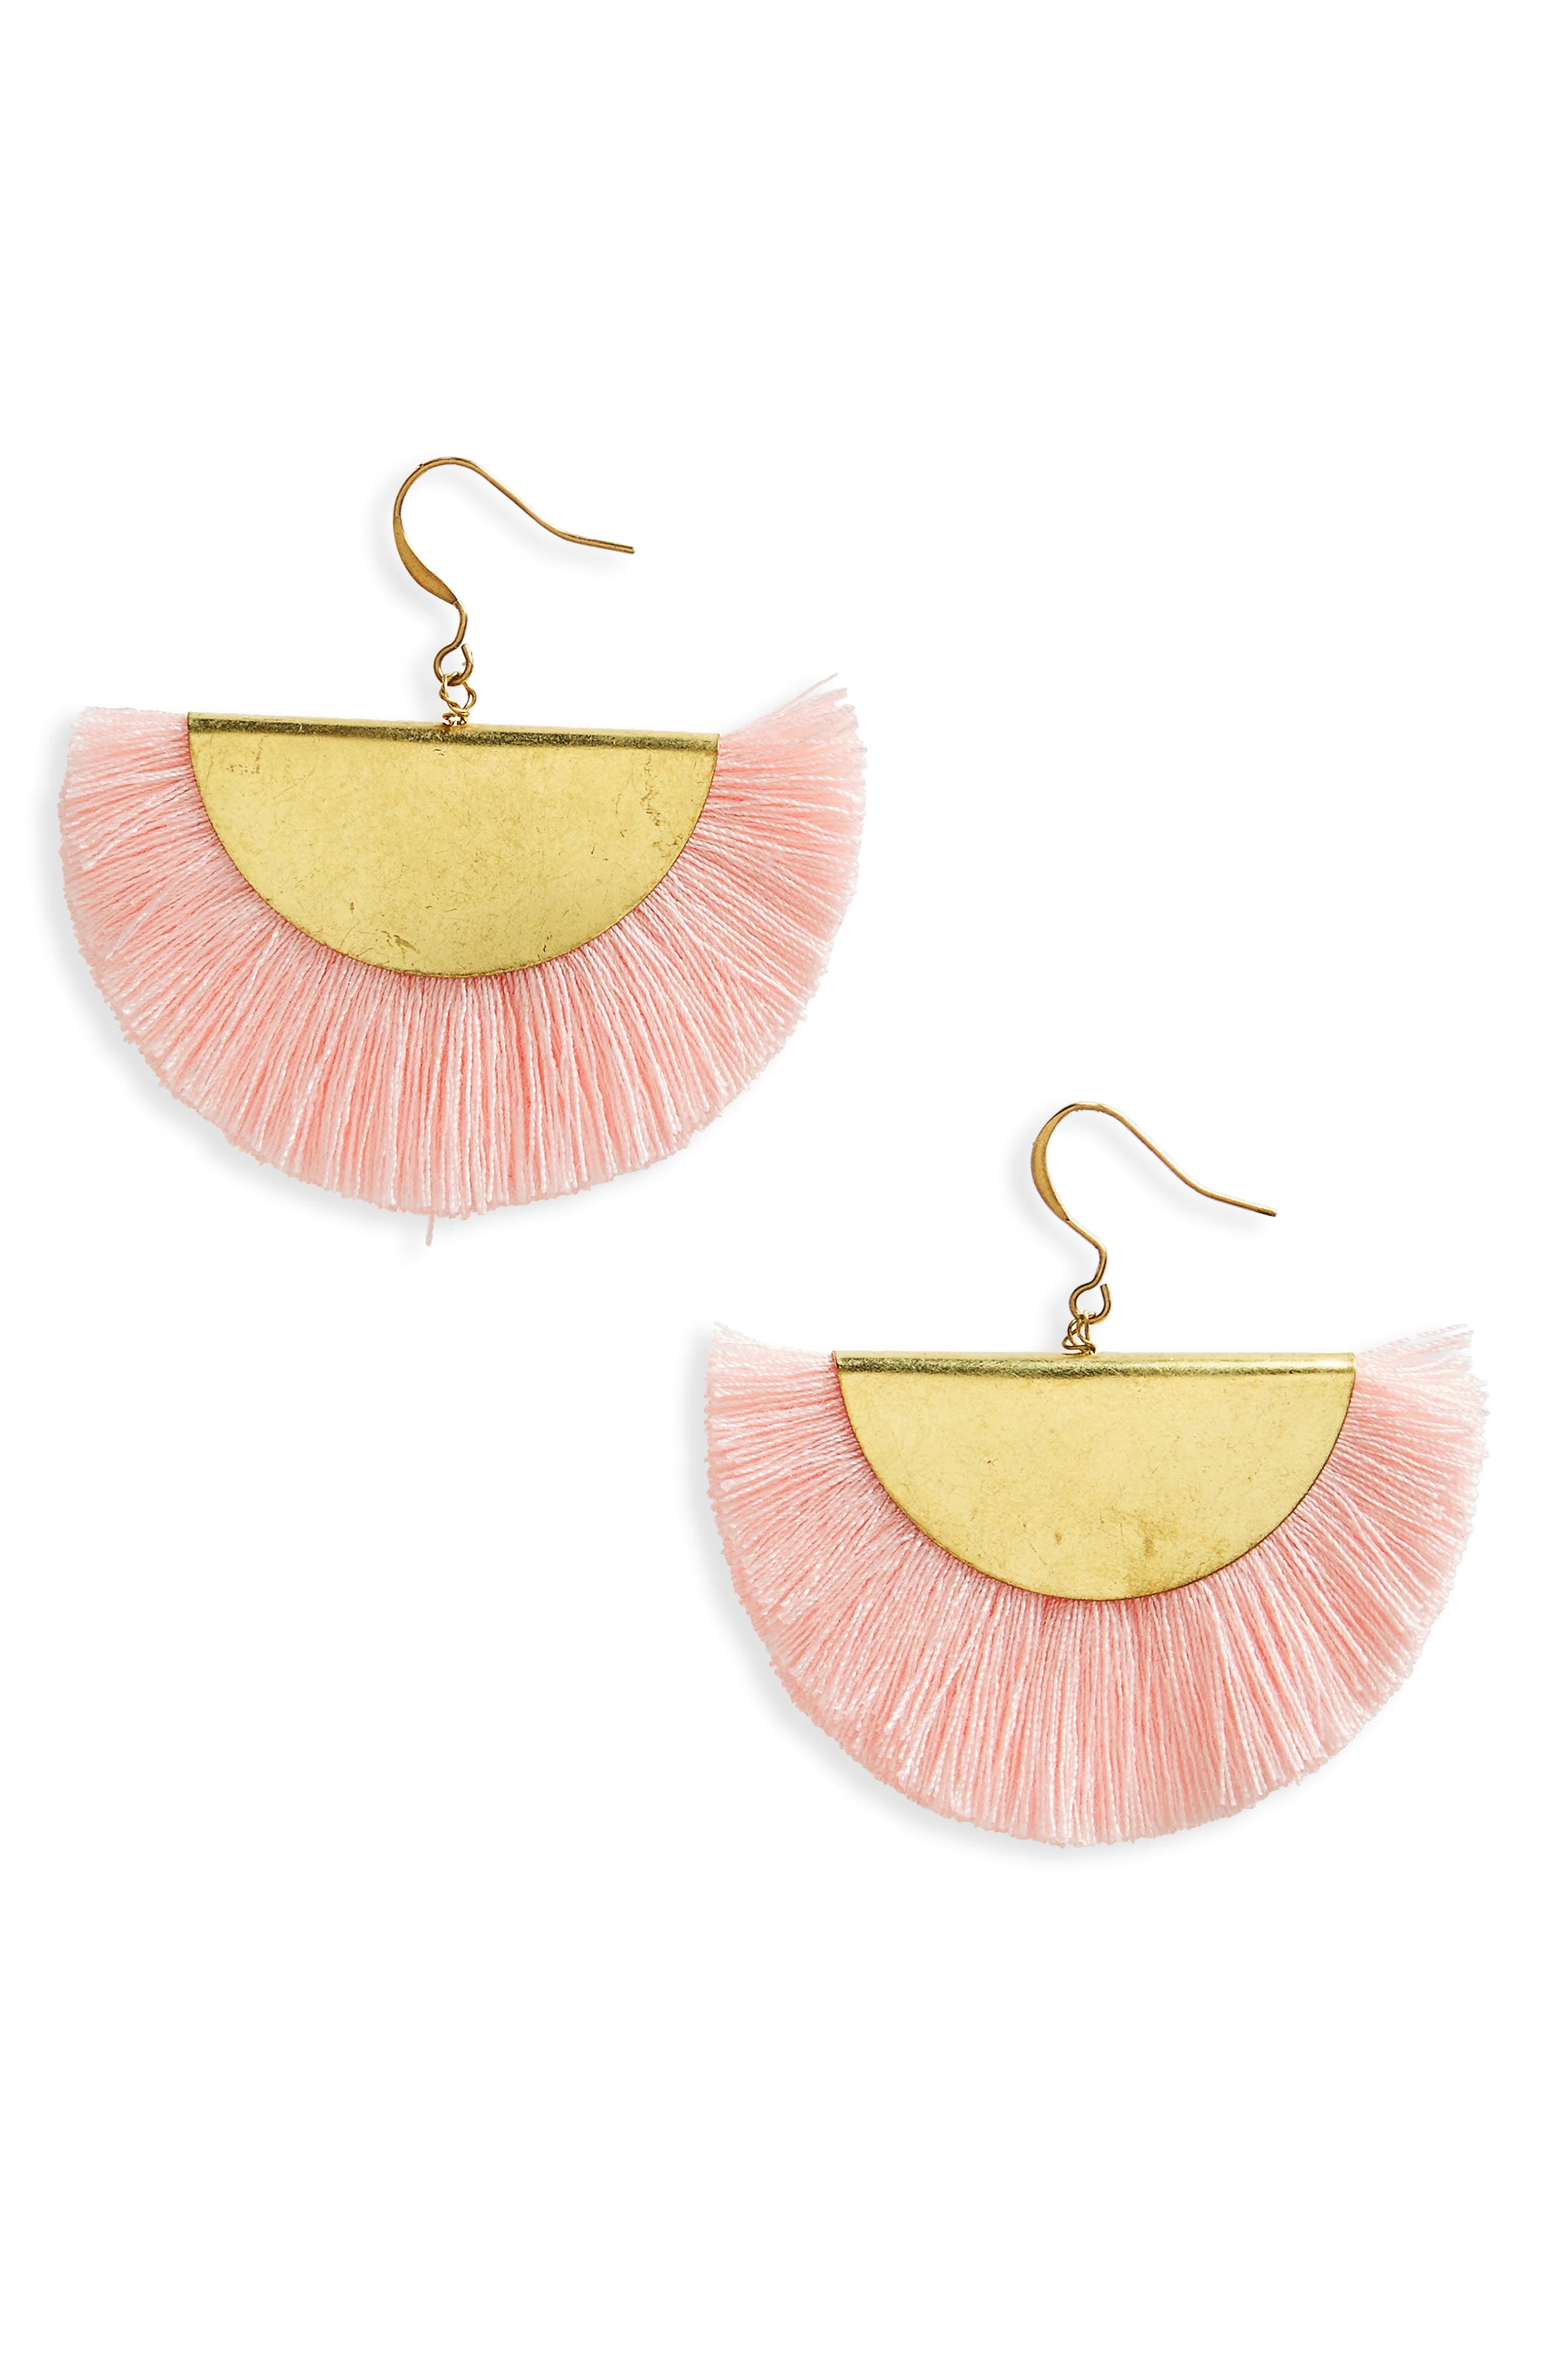 Fan Earrings,                             Main thumbnail 1, color,                             950